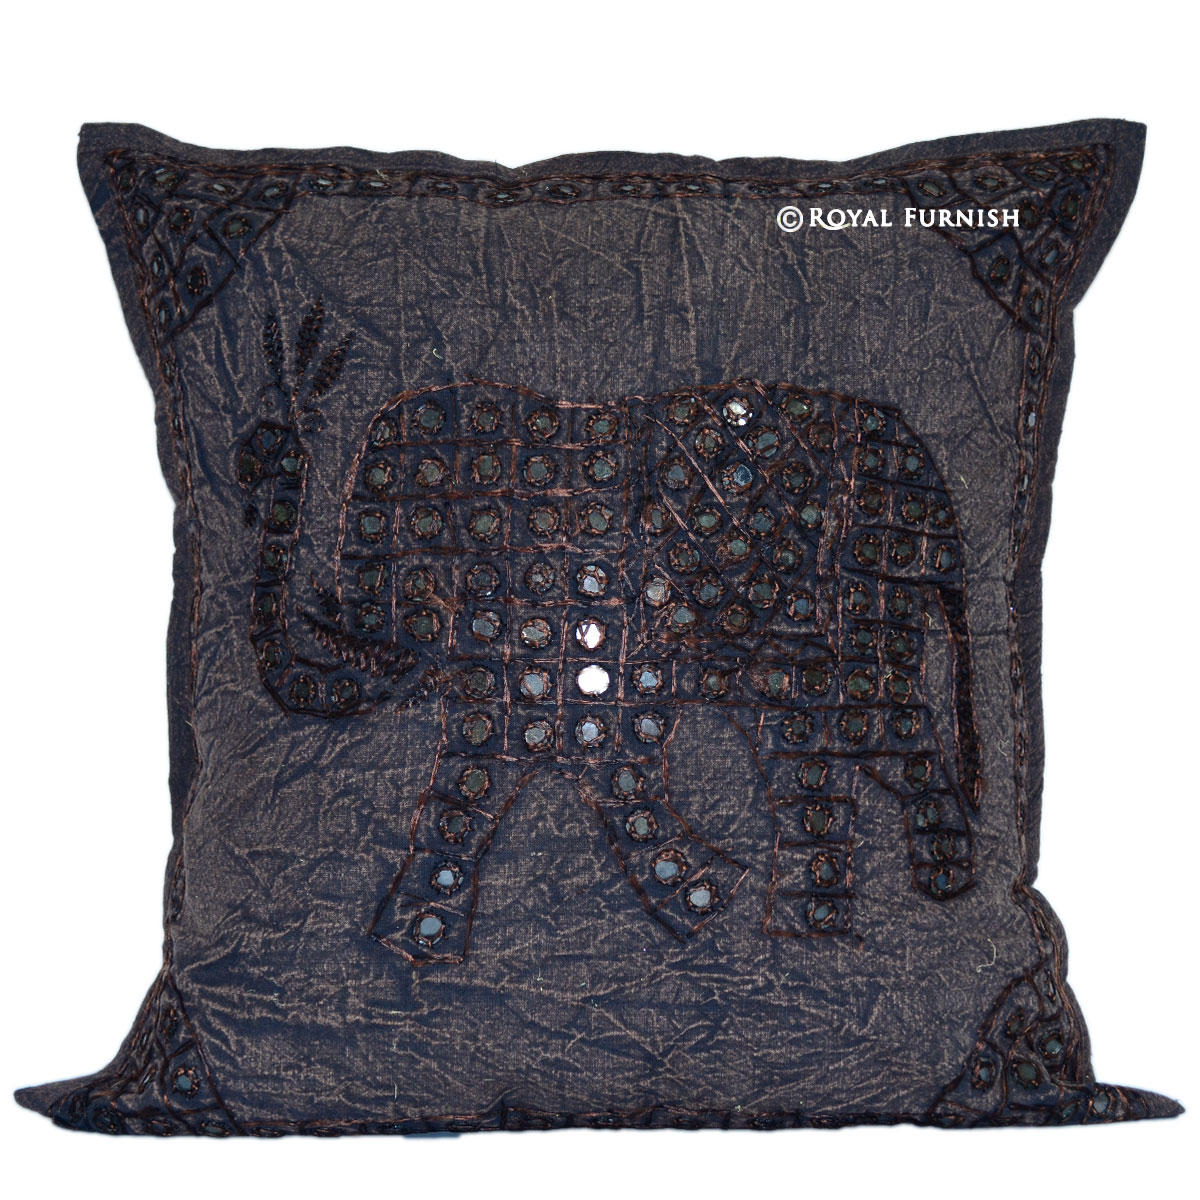 Decorative Pillows With Mirrors : Black Elephant Pattern Mirror Embroidered Cotton Throw Pillow Case - RoyalFurnish.com